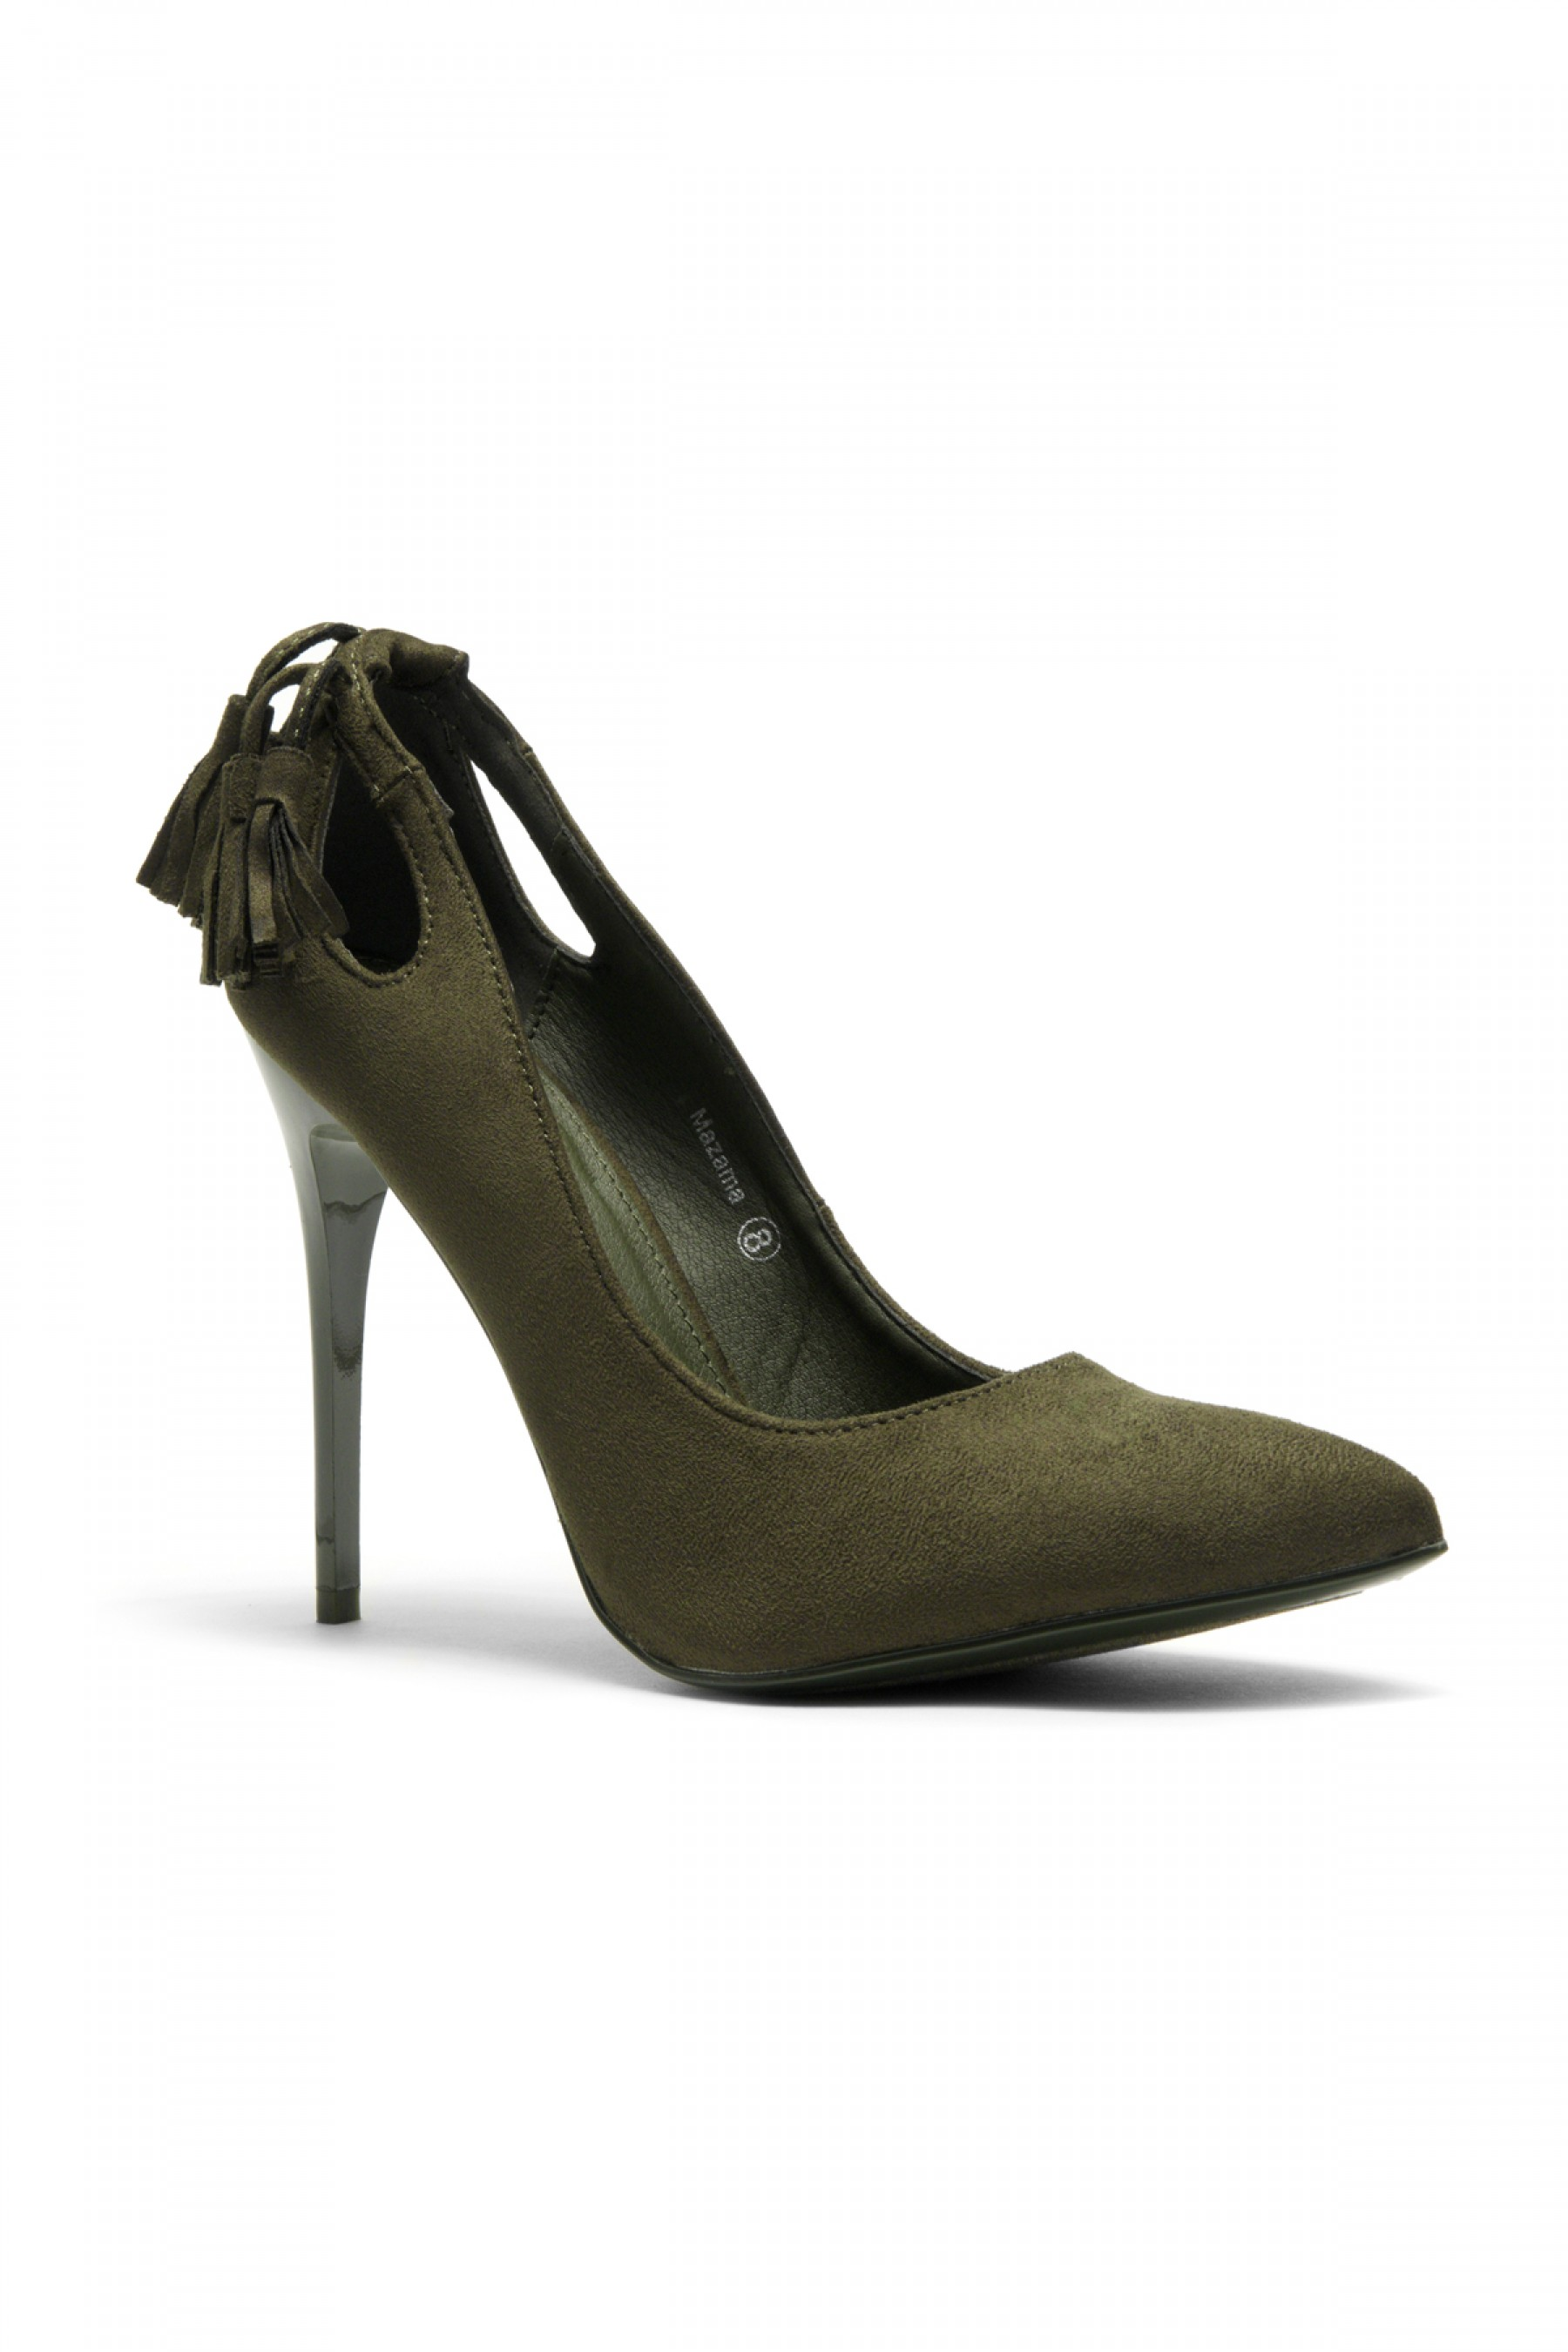 Women's Olive Mazama 4-inch Pump Heel with Tassled Back